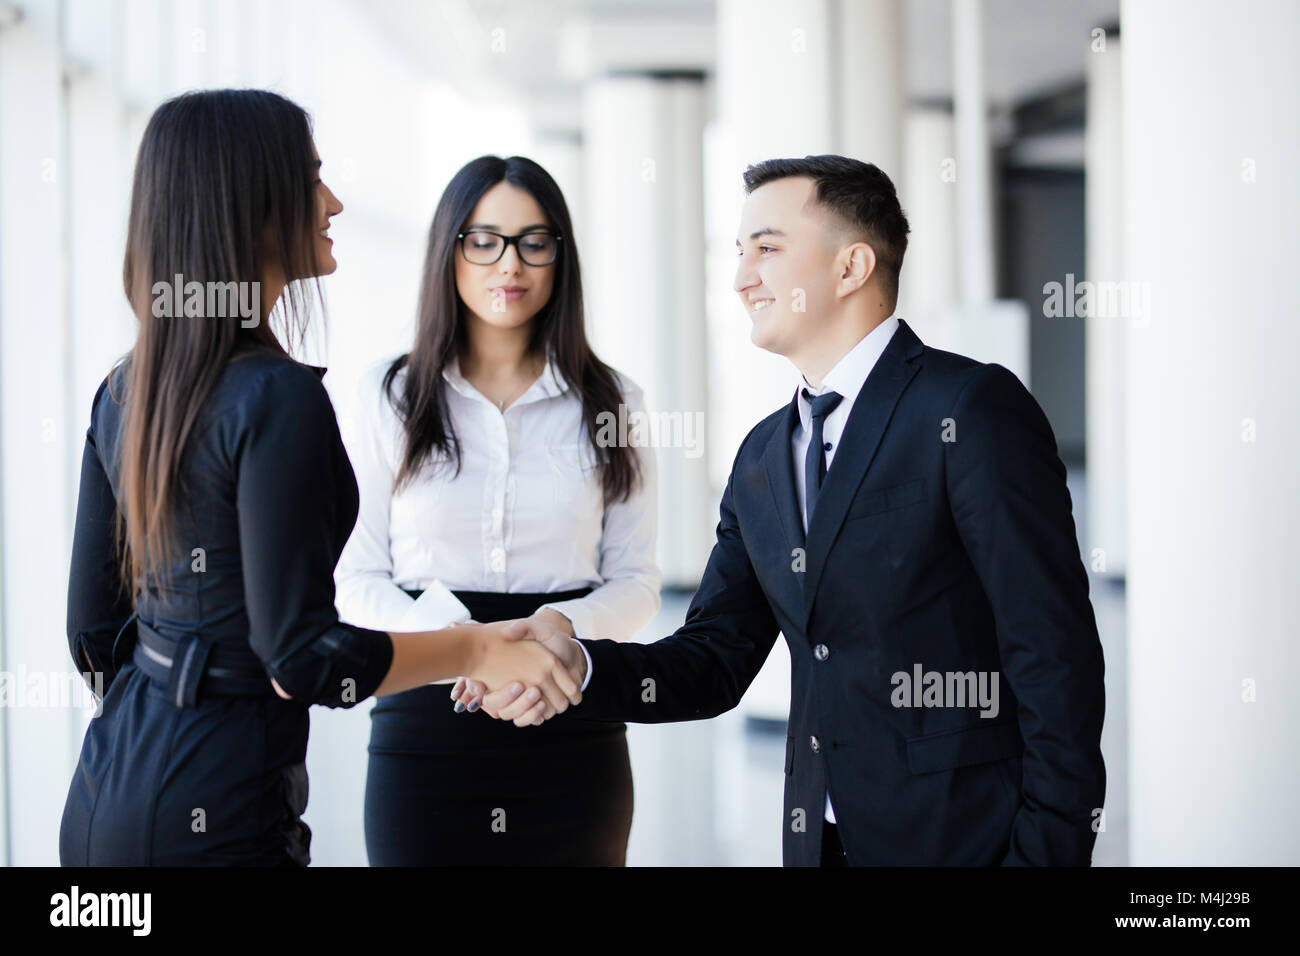 Business people shaking hands, finishing up a meeting - Stock Image